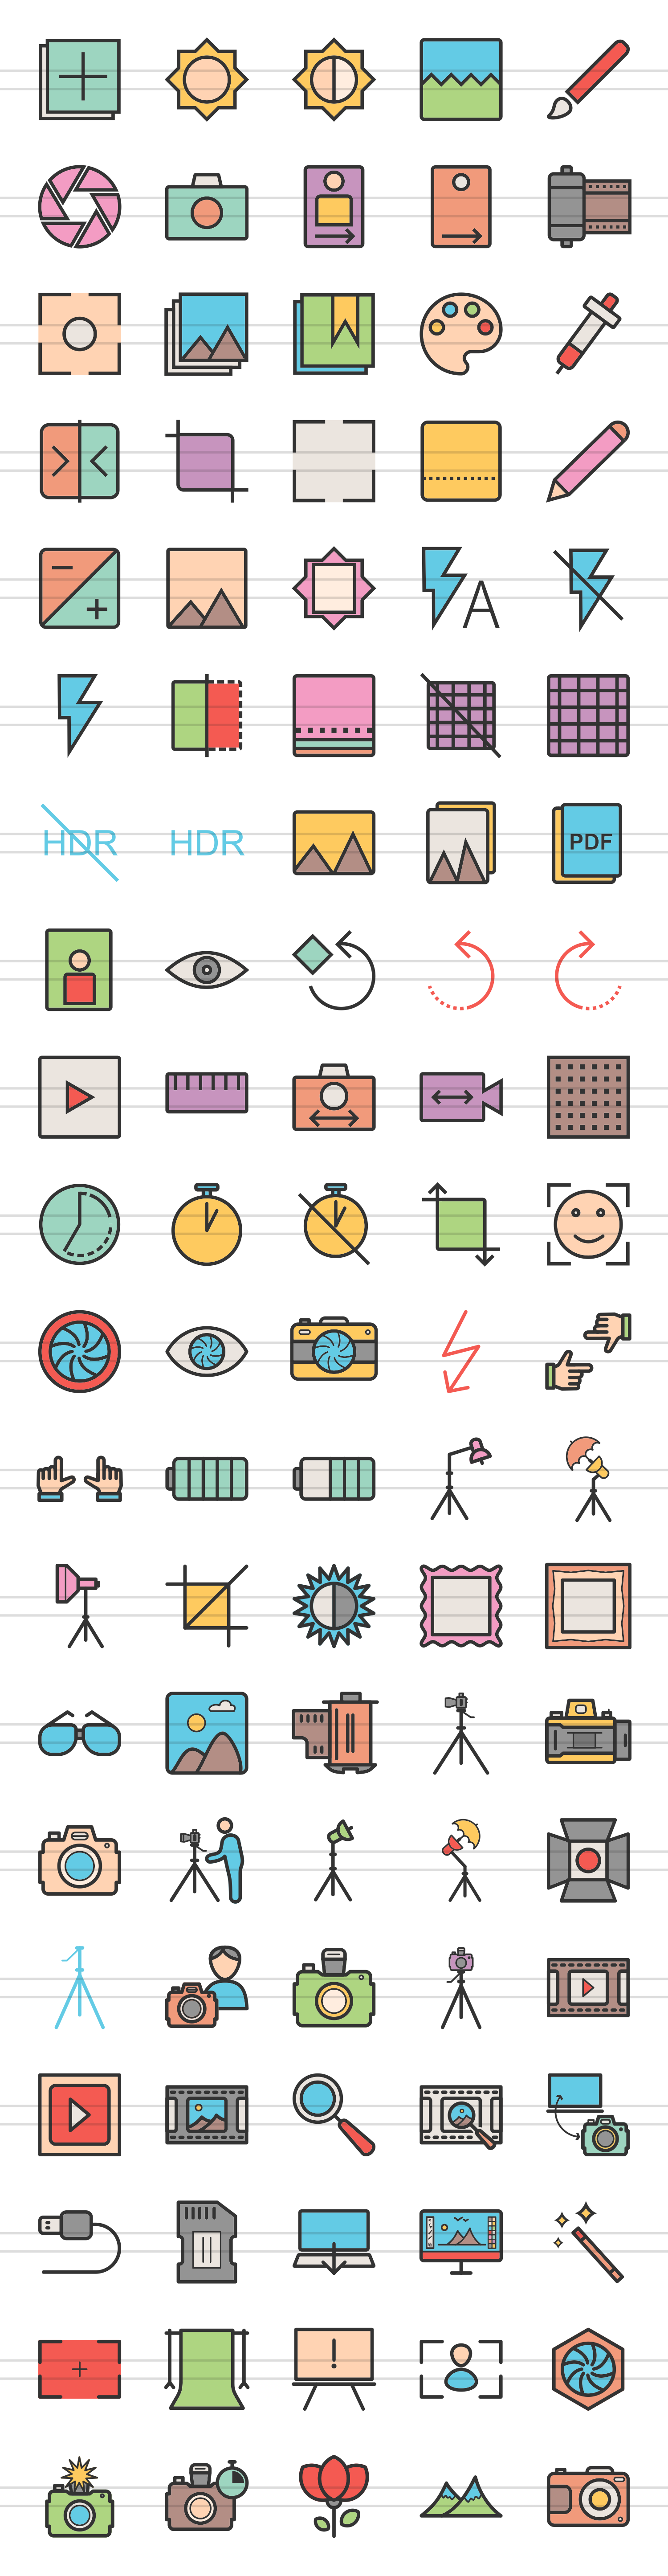 100 Photography & Picture Filled Line Icons example image 2